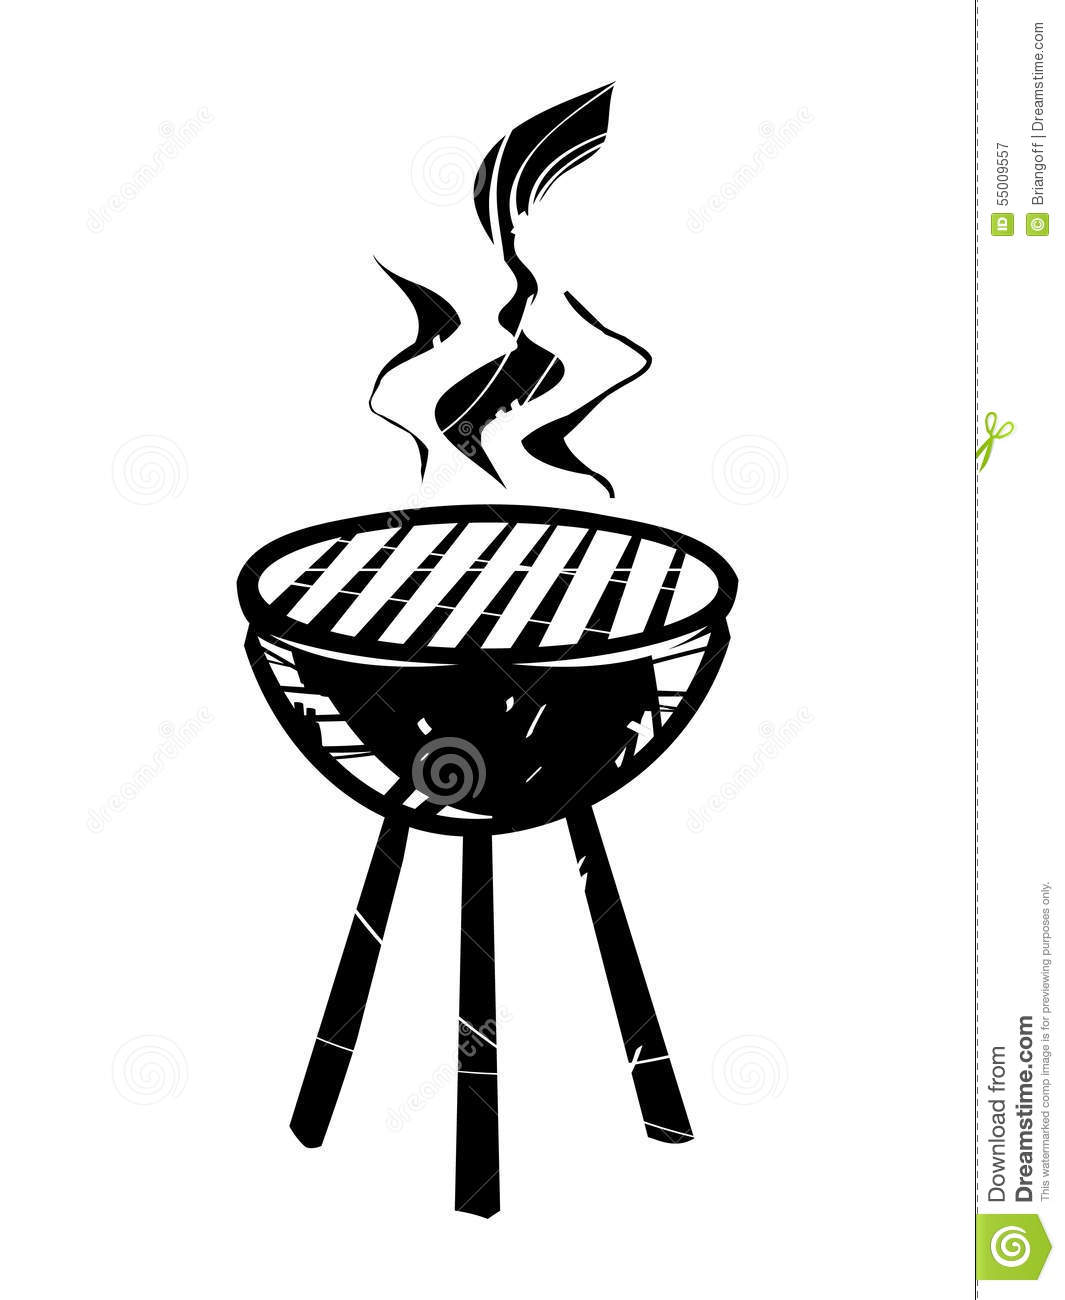 bbq vector icon illustration 55009557 megapixl rh megapixl com bbq vector free download bbq vector free download